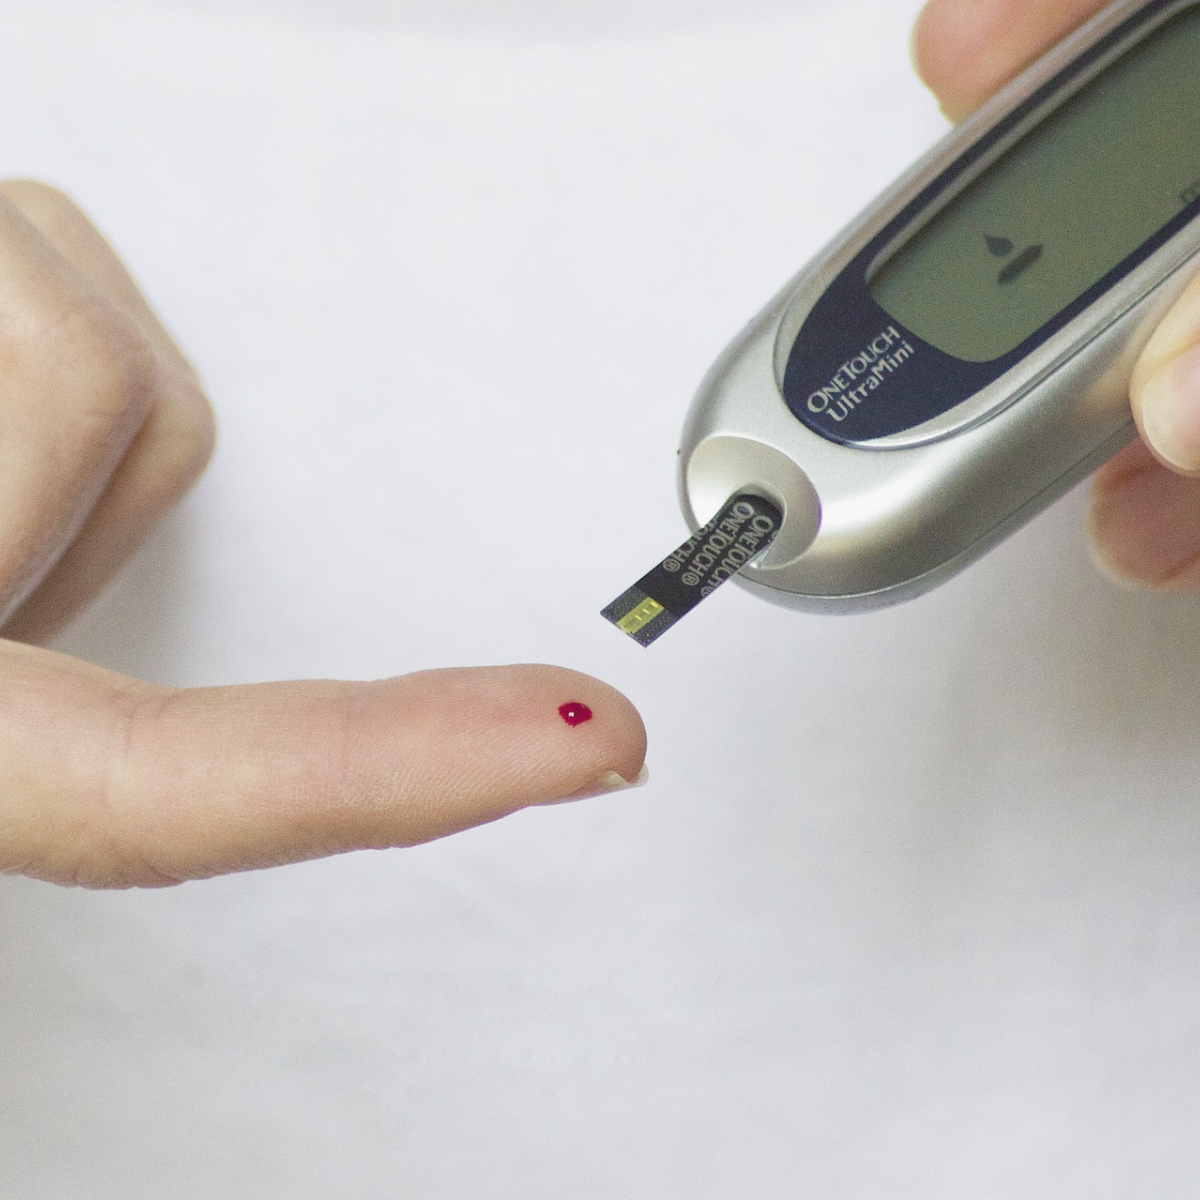 5 Simple and effective measures to avoid Type 2 diabetes